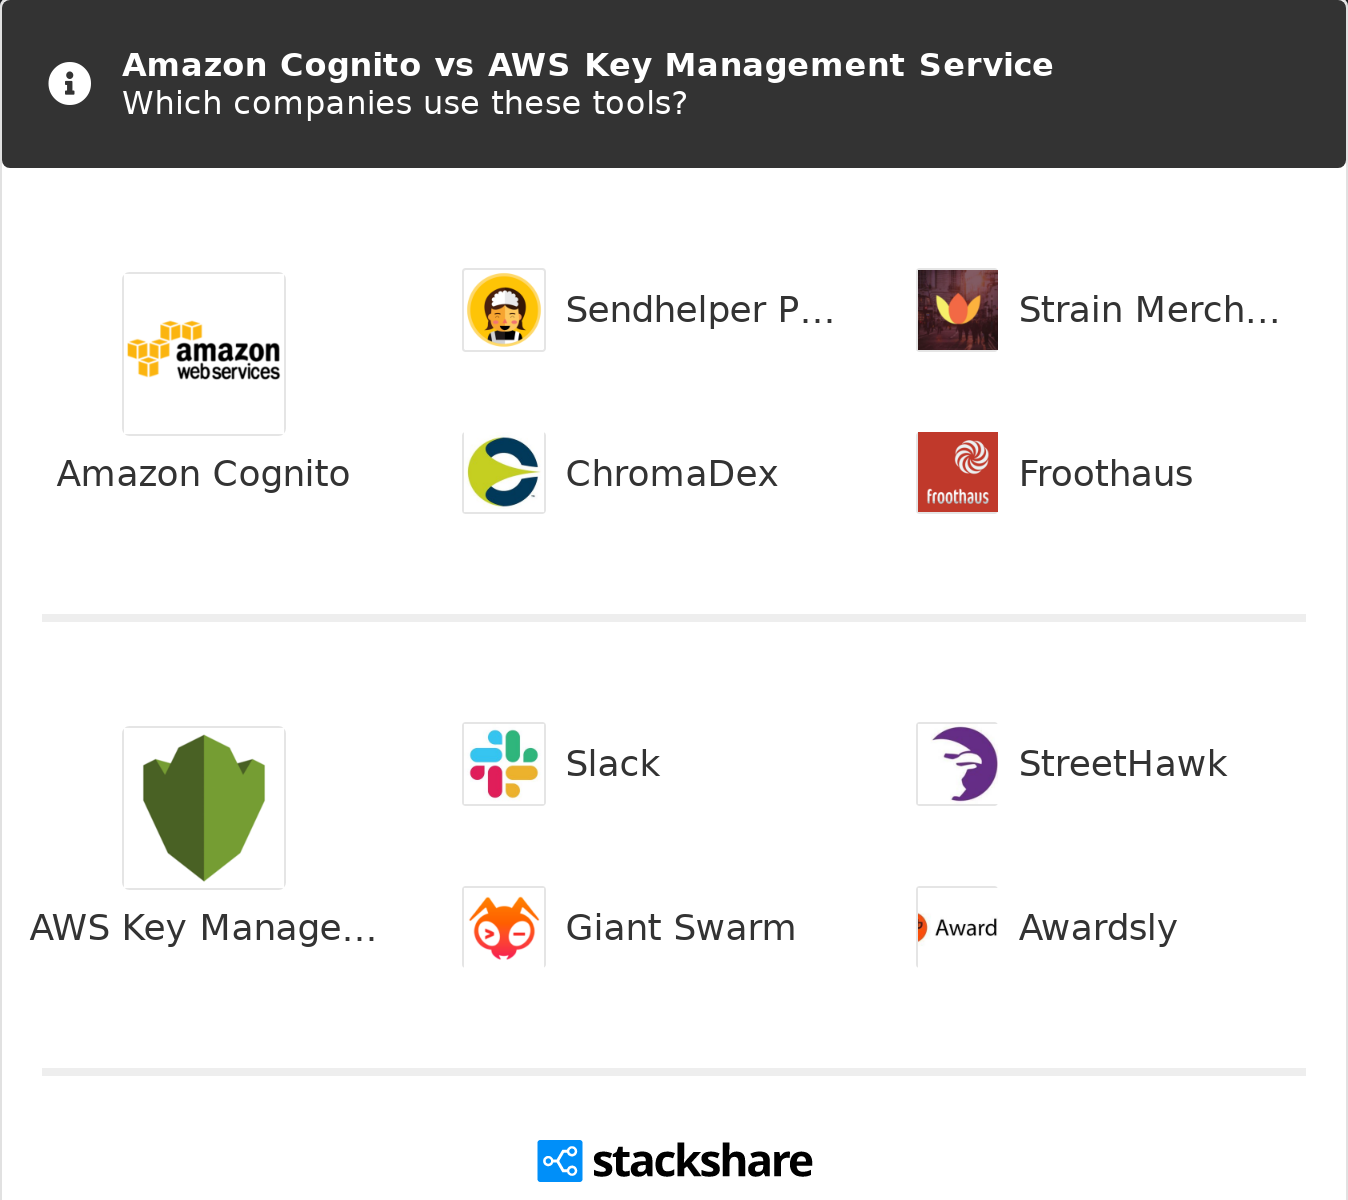 Amazon Cognito vs AWS Key Management Service | What are the